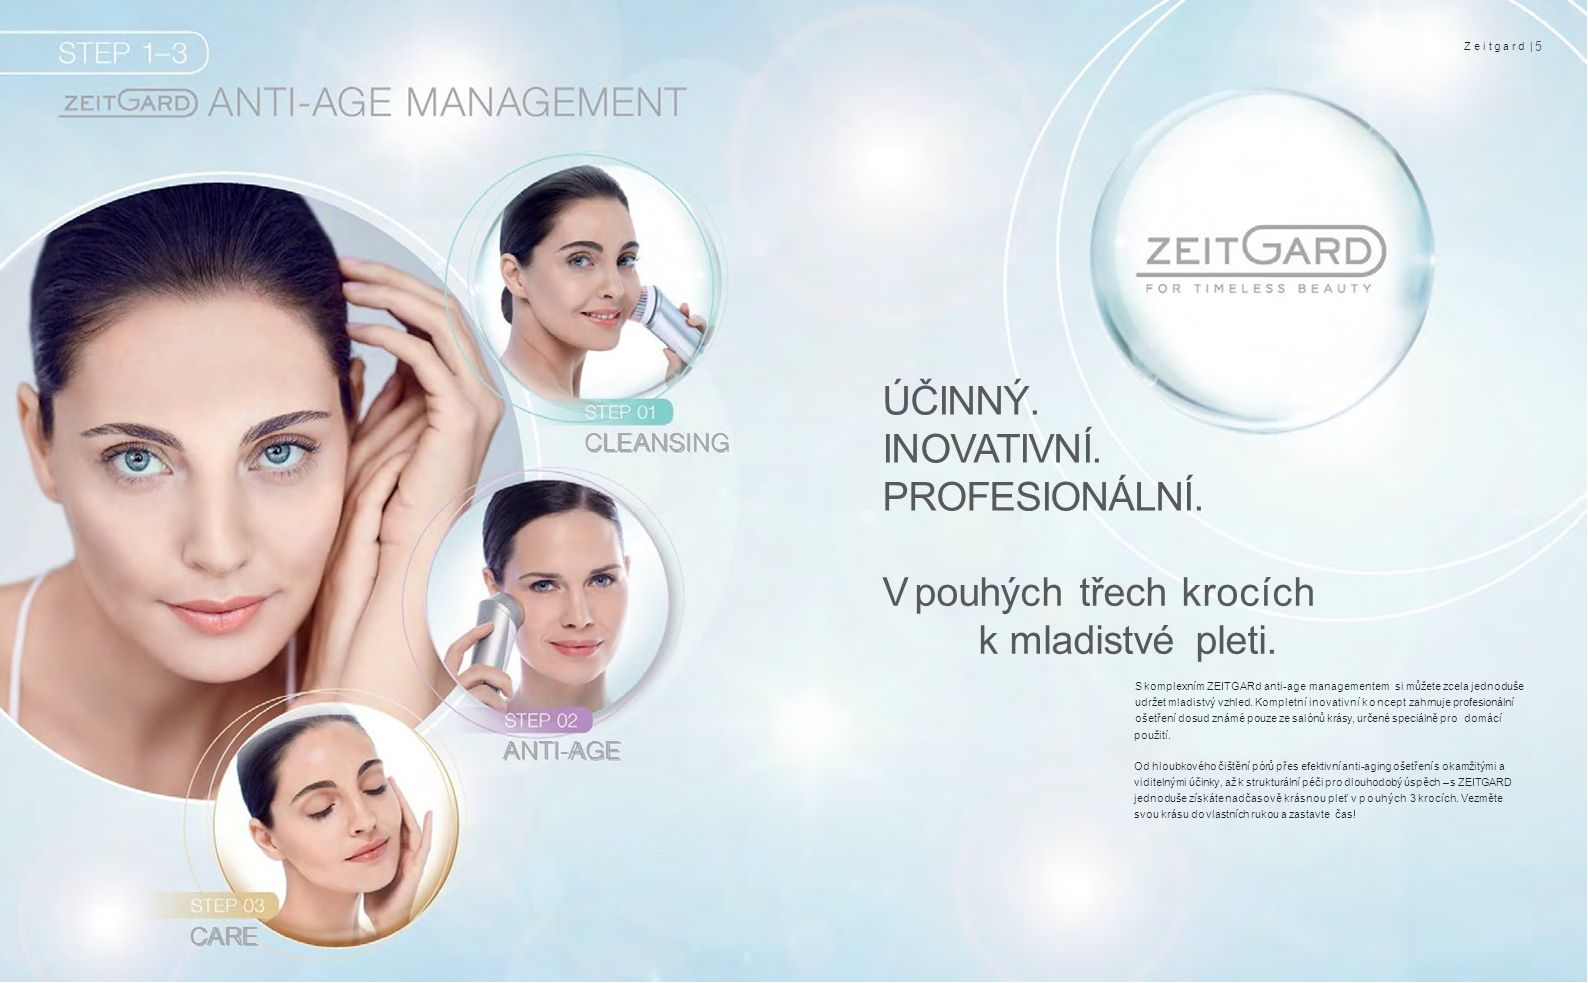 CLEANSING ANTI-AGE CARECARE Zeitgard | 5 ÚČINNÝ. INOVATIVNÍ.